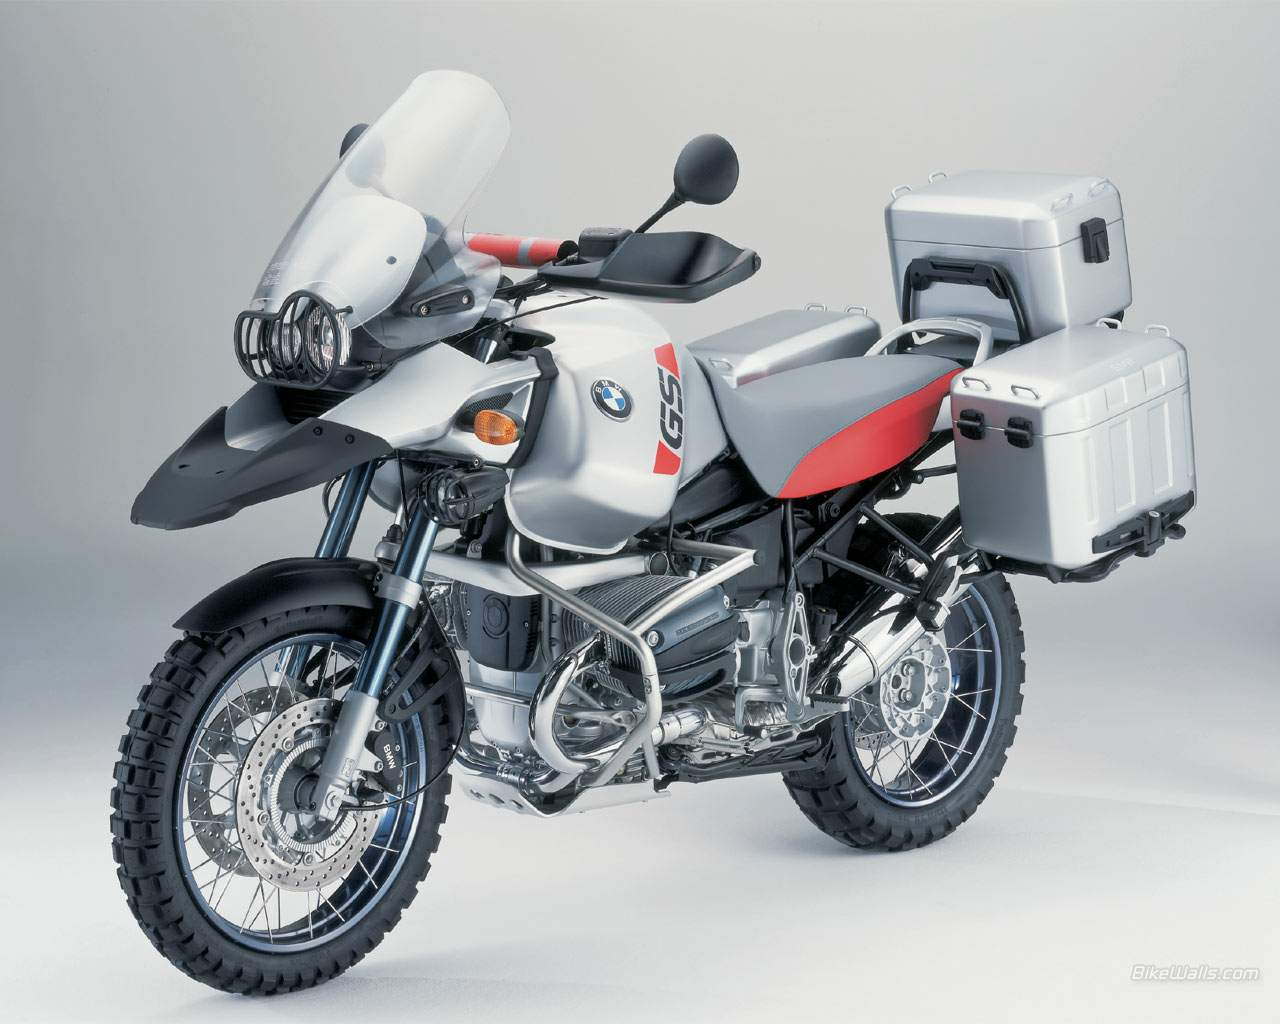 BMW R1150GS 2002 images #7158